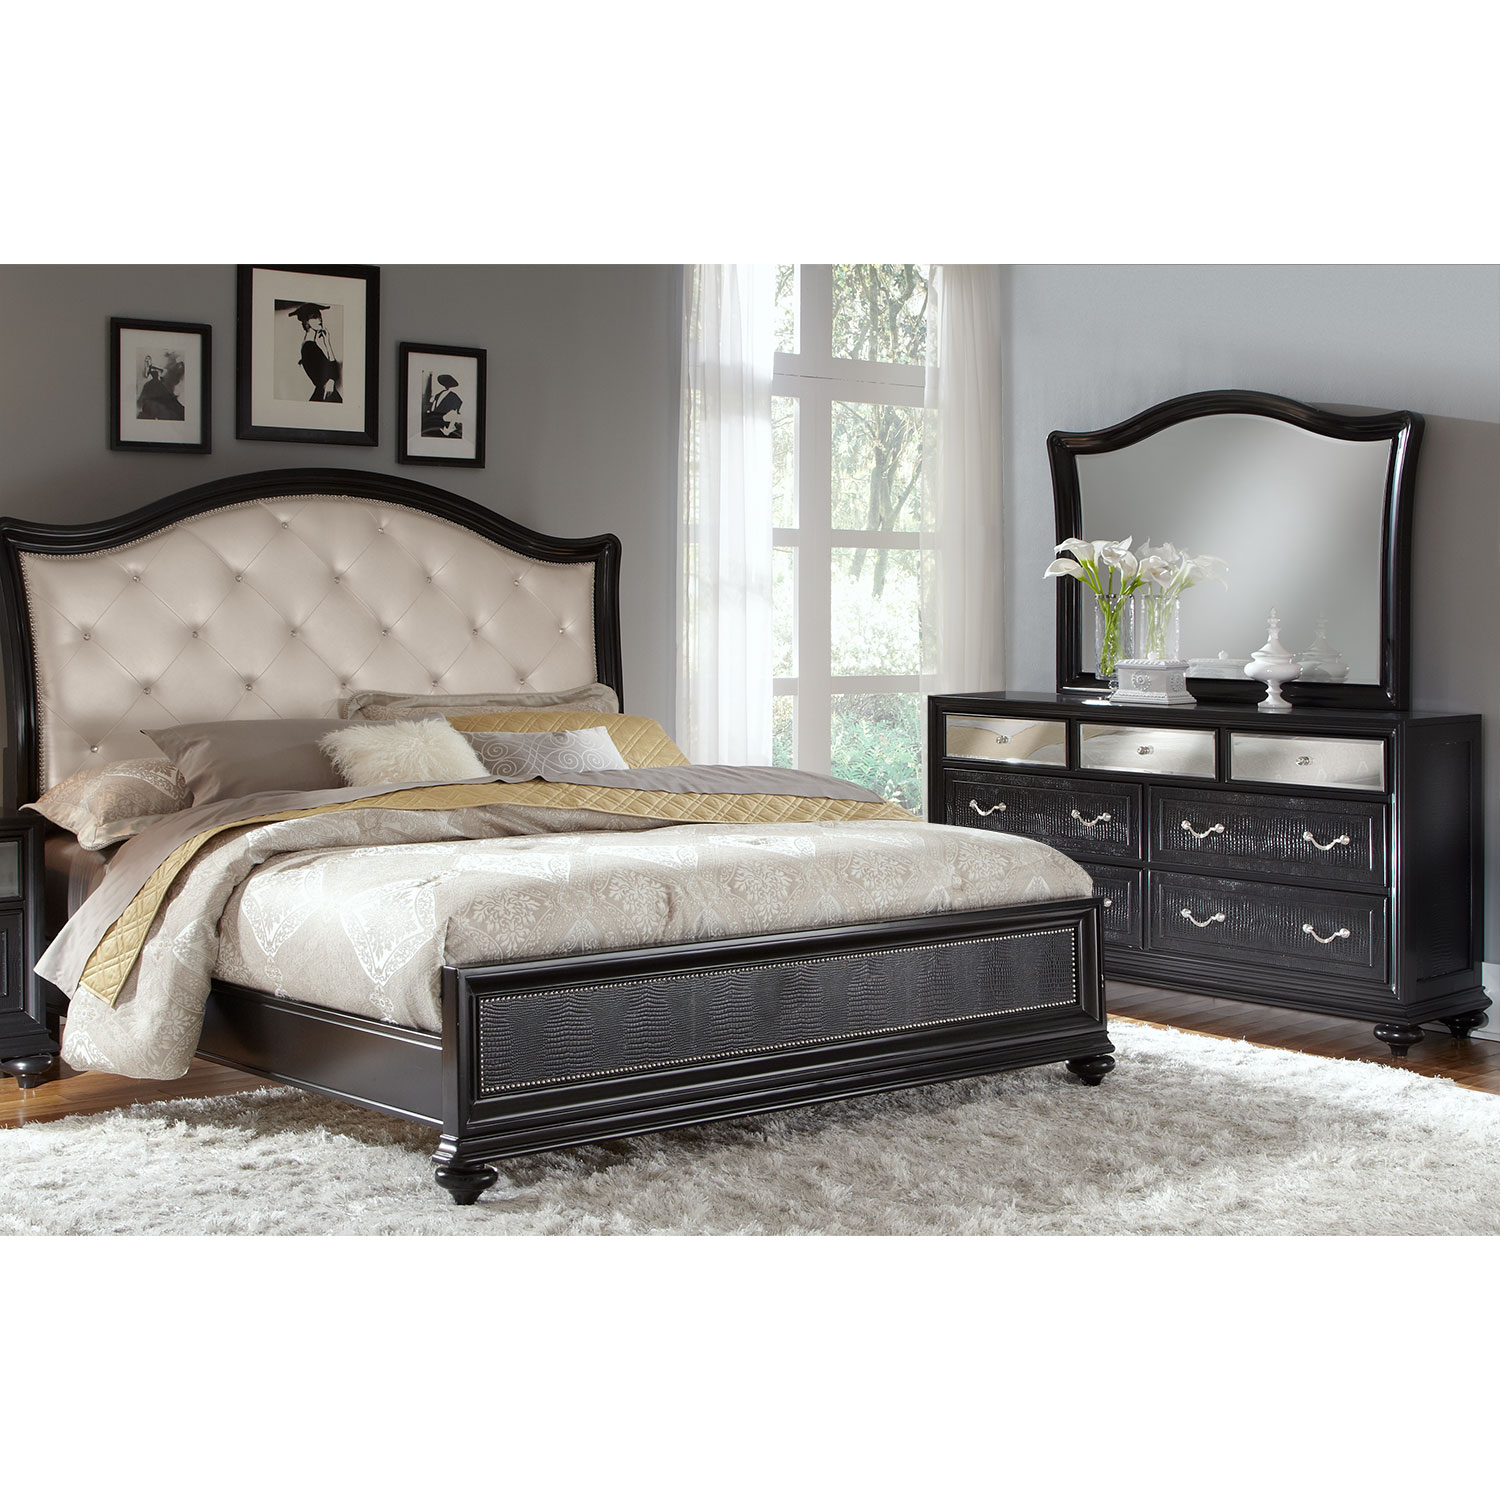 The Marilyn Collection - Ebony | Value City Furniture